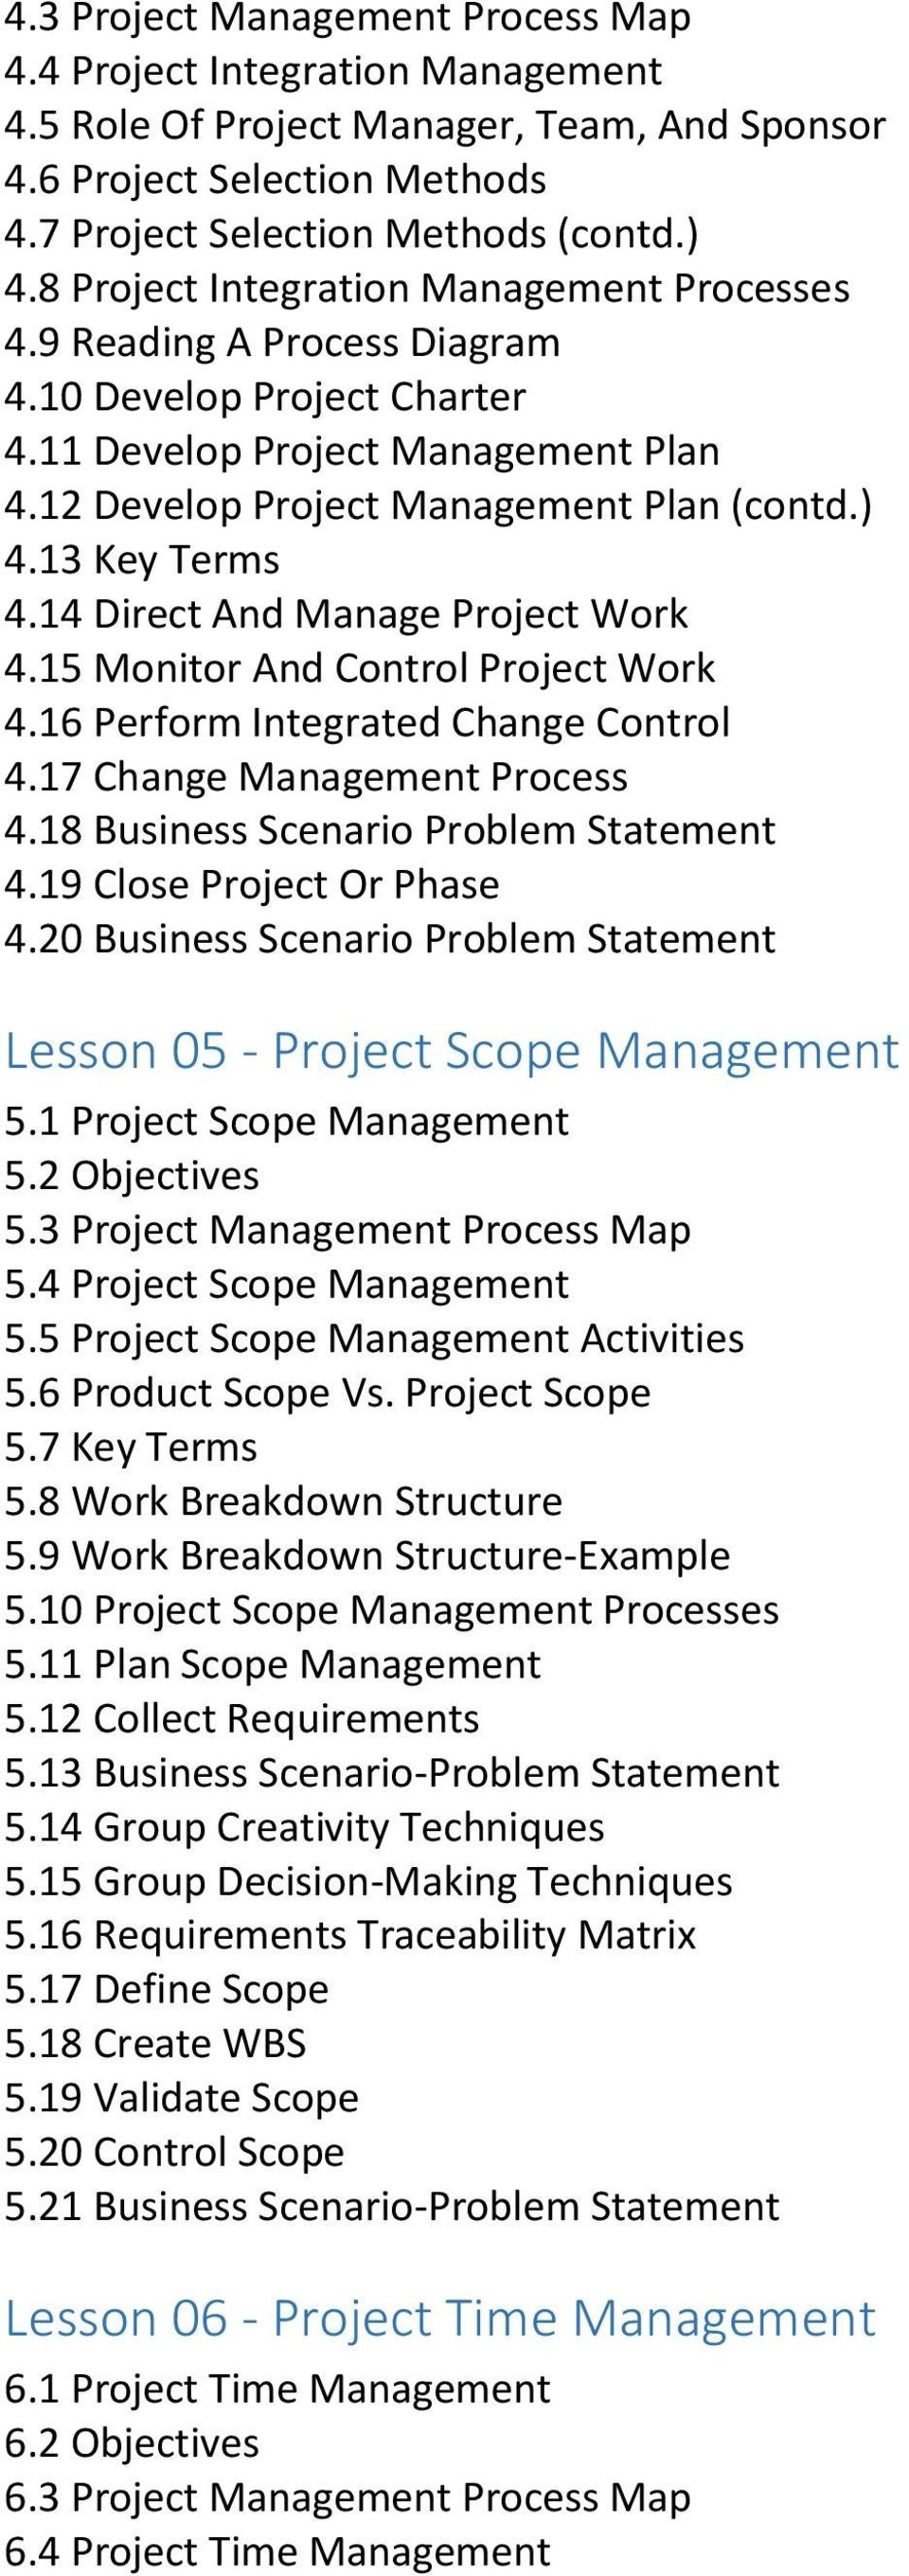 13 Key Terms 4.14 Direct And Manage Project Work 4.15 Monitor And Control Project Work 4.16 Perform Integrated Change Control 4.17 Change Management Process 4.18 Business Scenario Problem Statement 4.